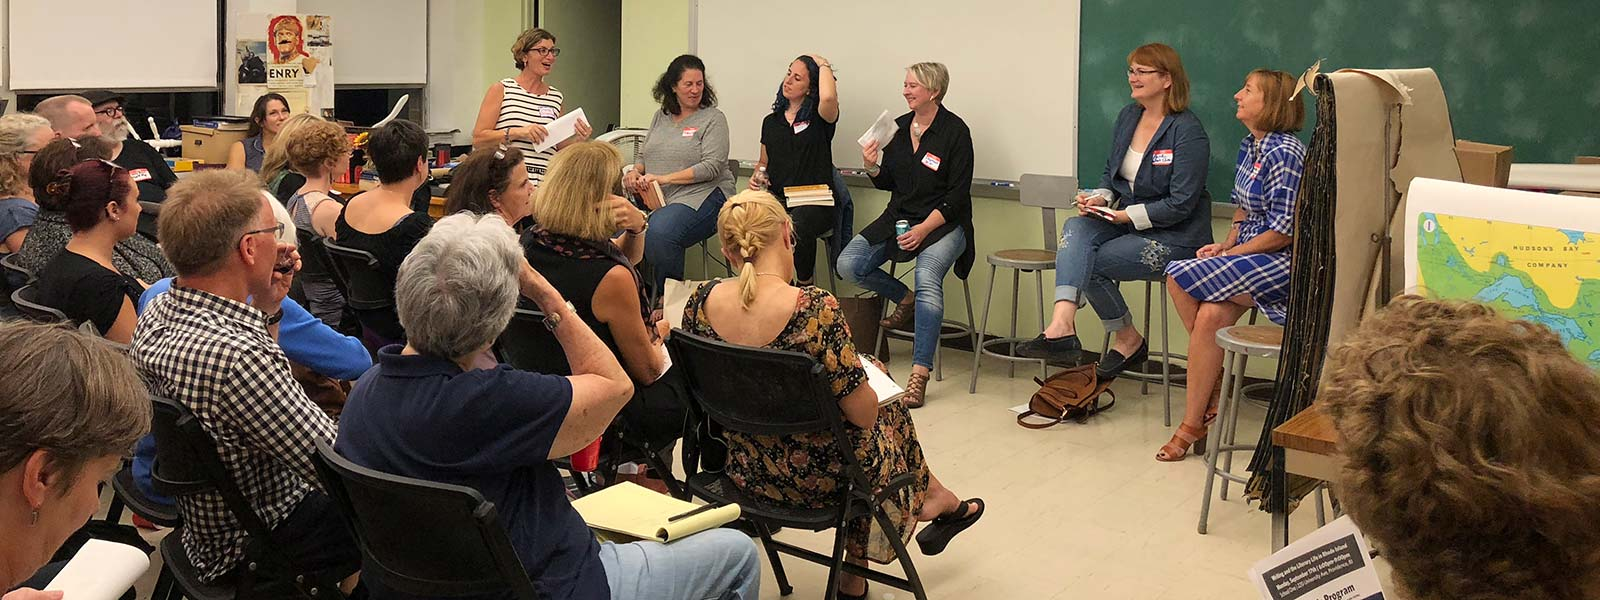 Community writing center for adult writers and young authors, from beginners to professionals.